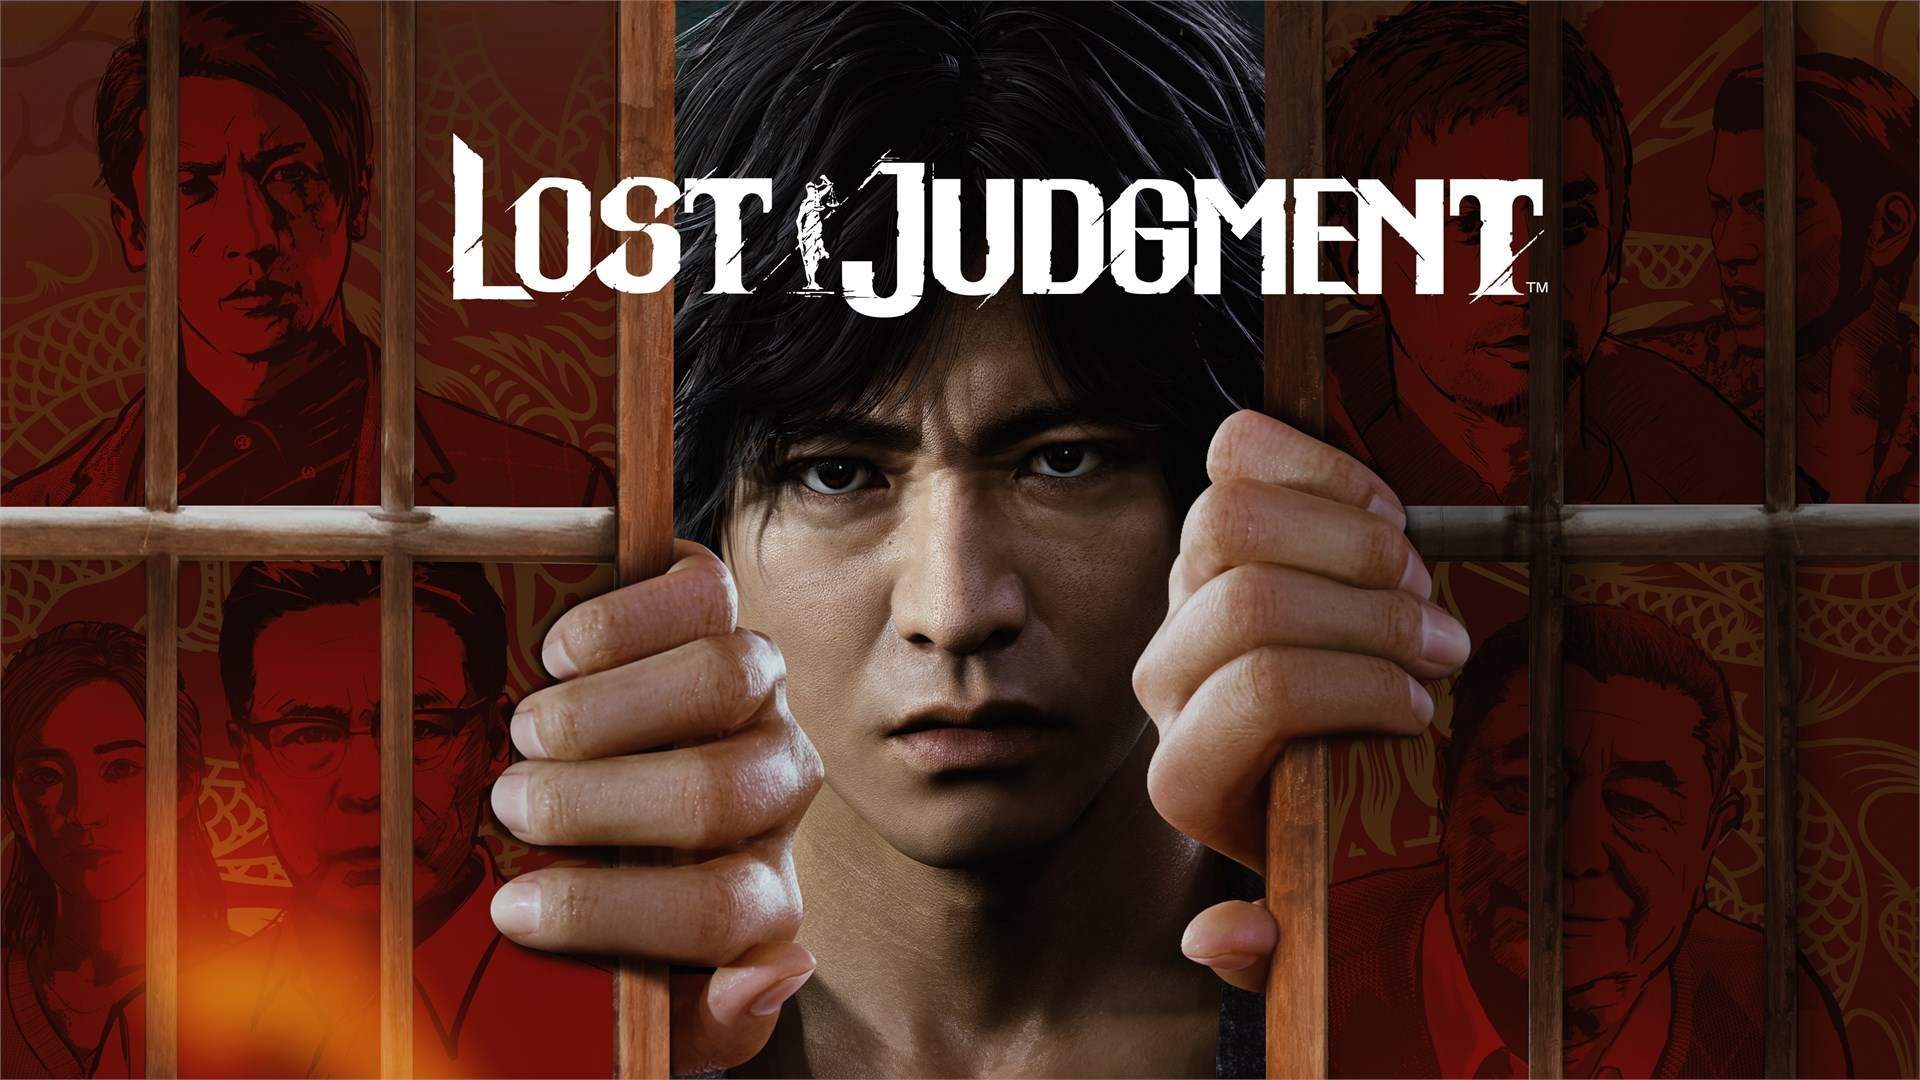 Lost Judgment Digital Deluxe And Ultimate Editions Are Now Available For Xbox One And Xbox Series X|S 1